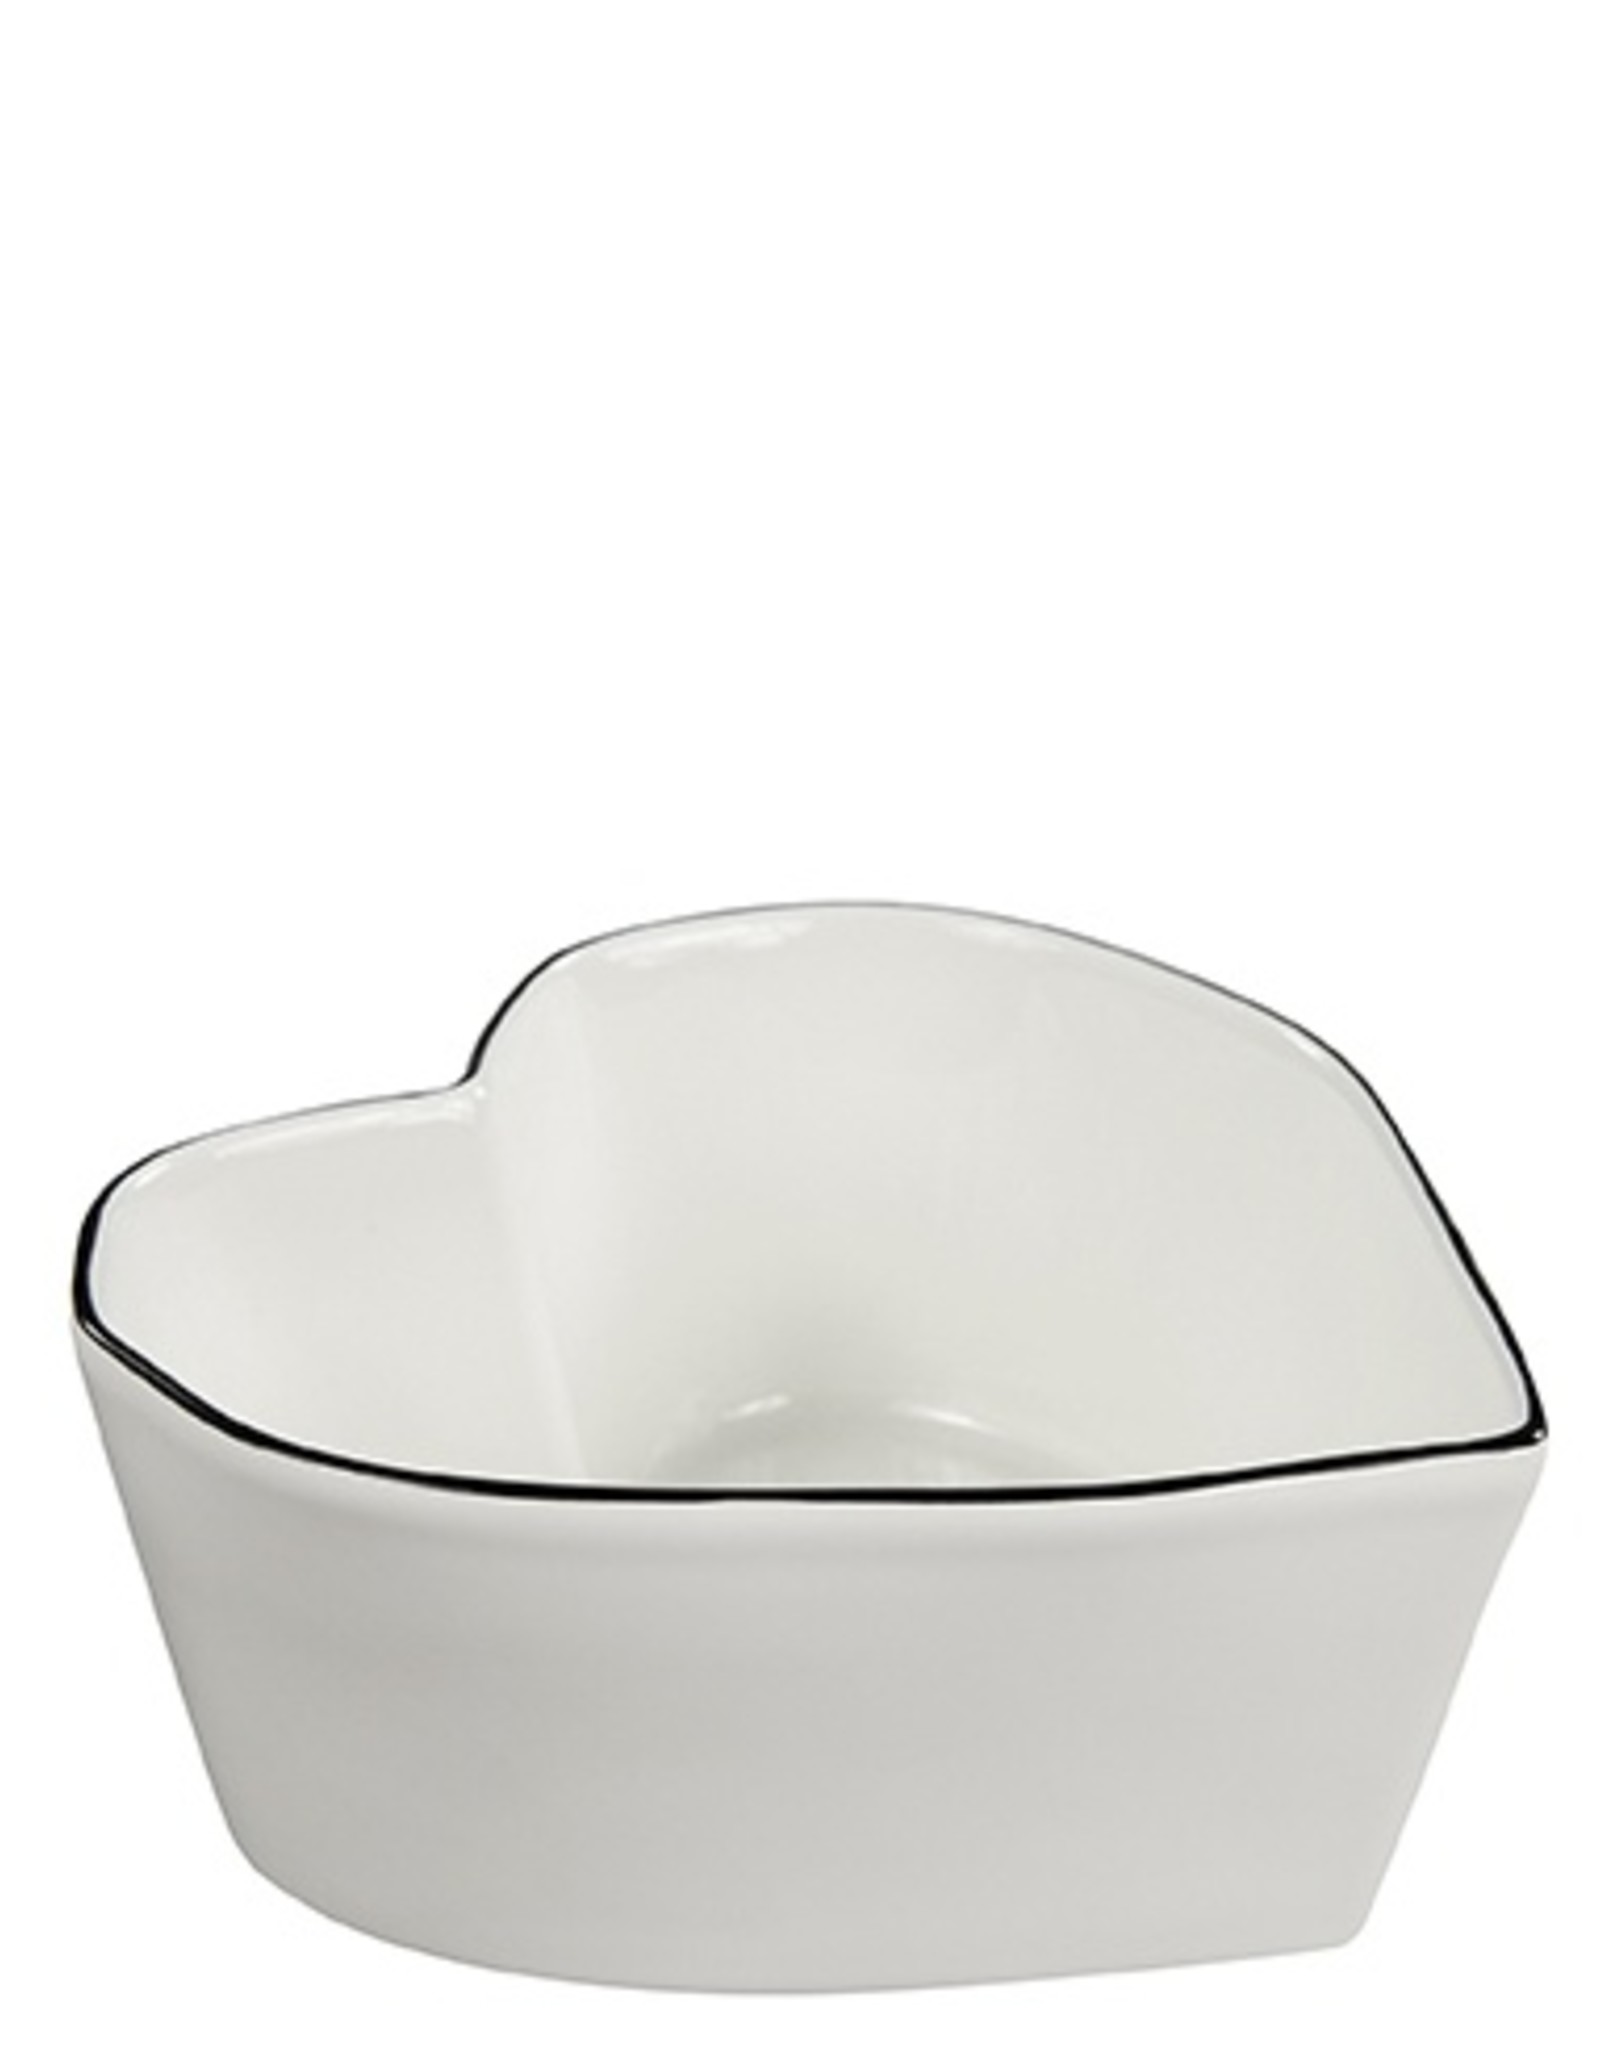 Bastion Collections Heart shape bowl large